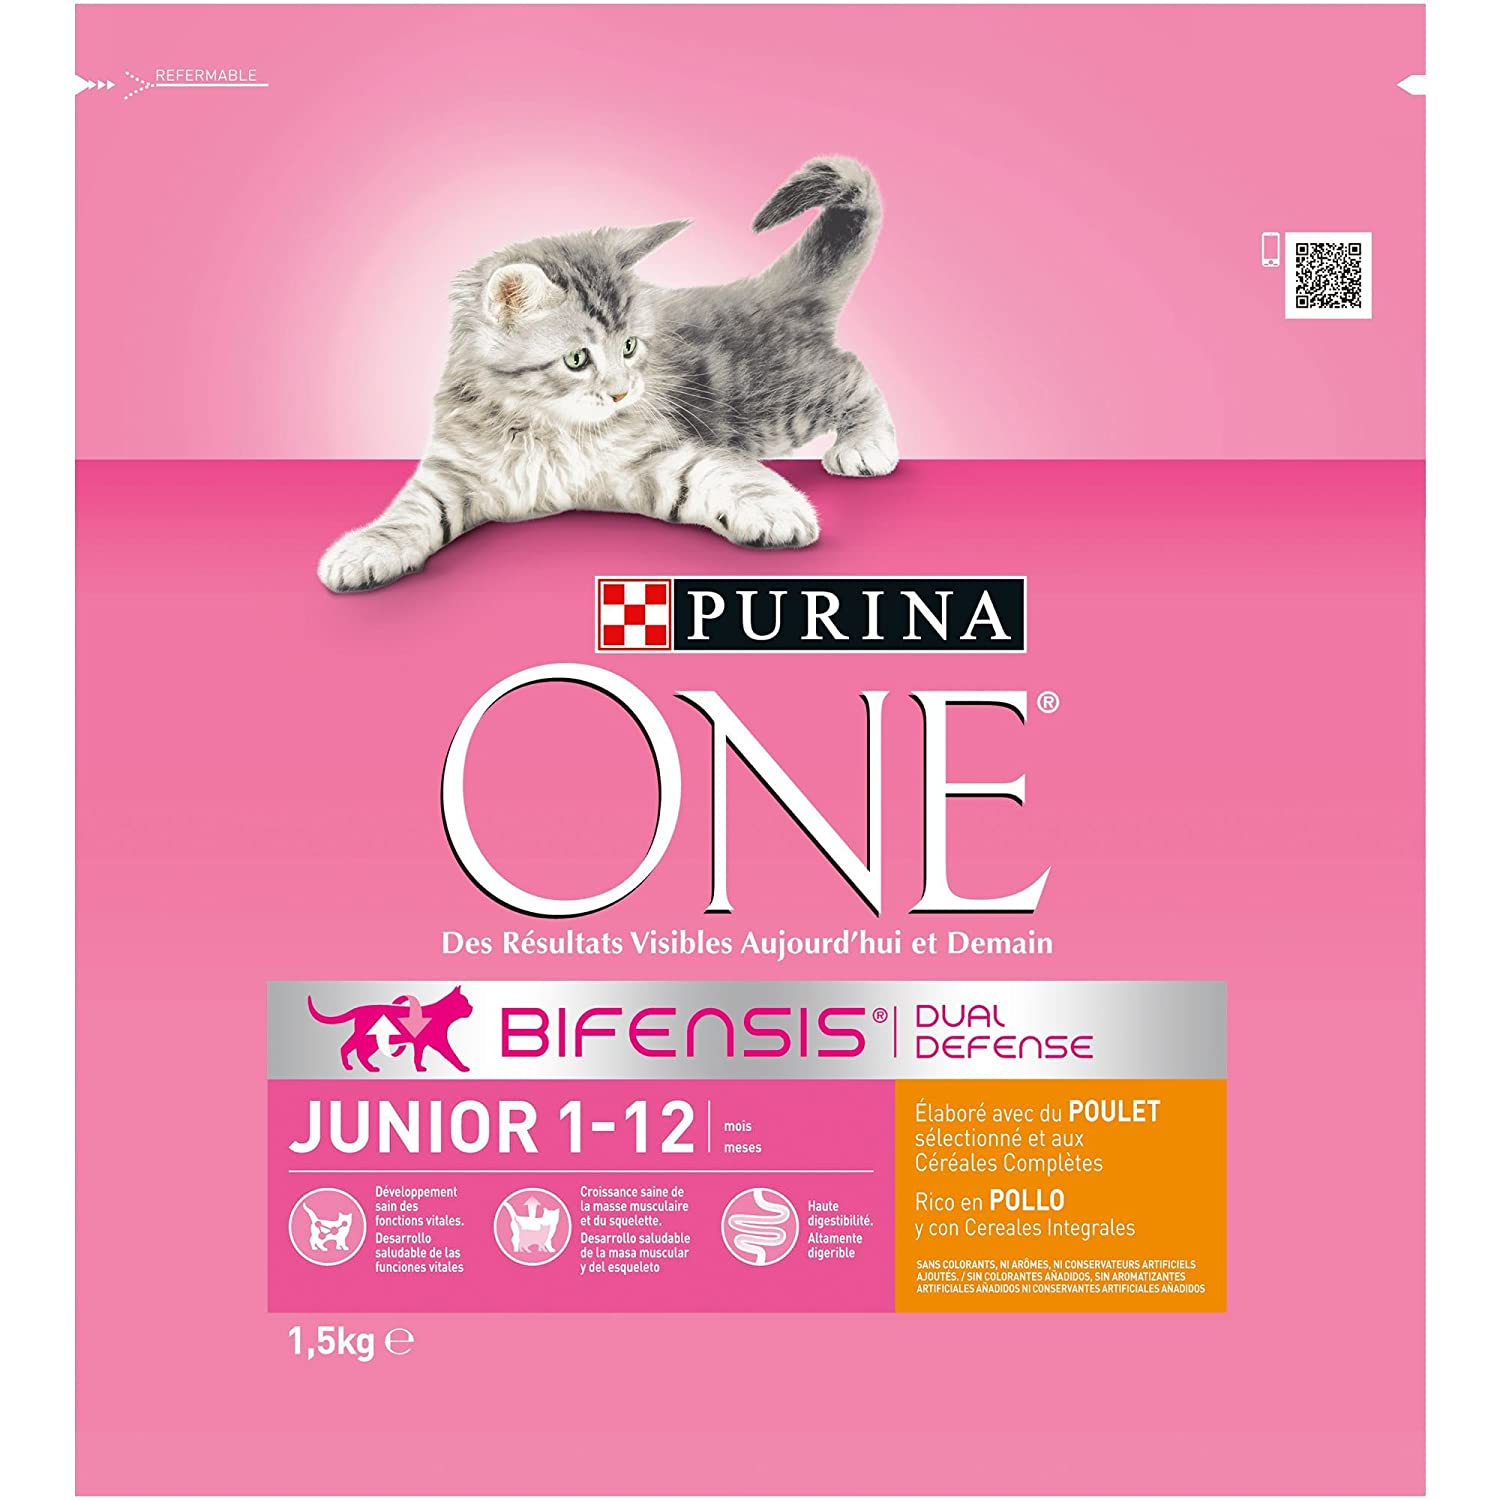 Purina ONE Bifensis Pienso para gatitos Junior Pollo y Cereales 6 x 1,5 Kg: Amazon.es: Productos para mascotas